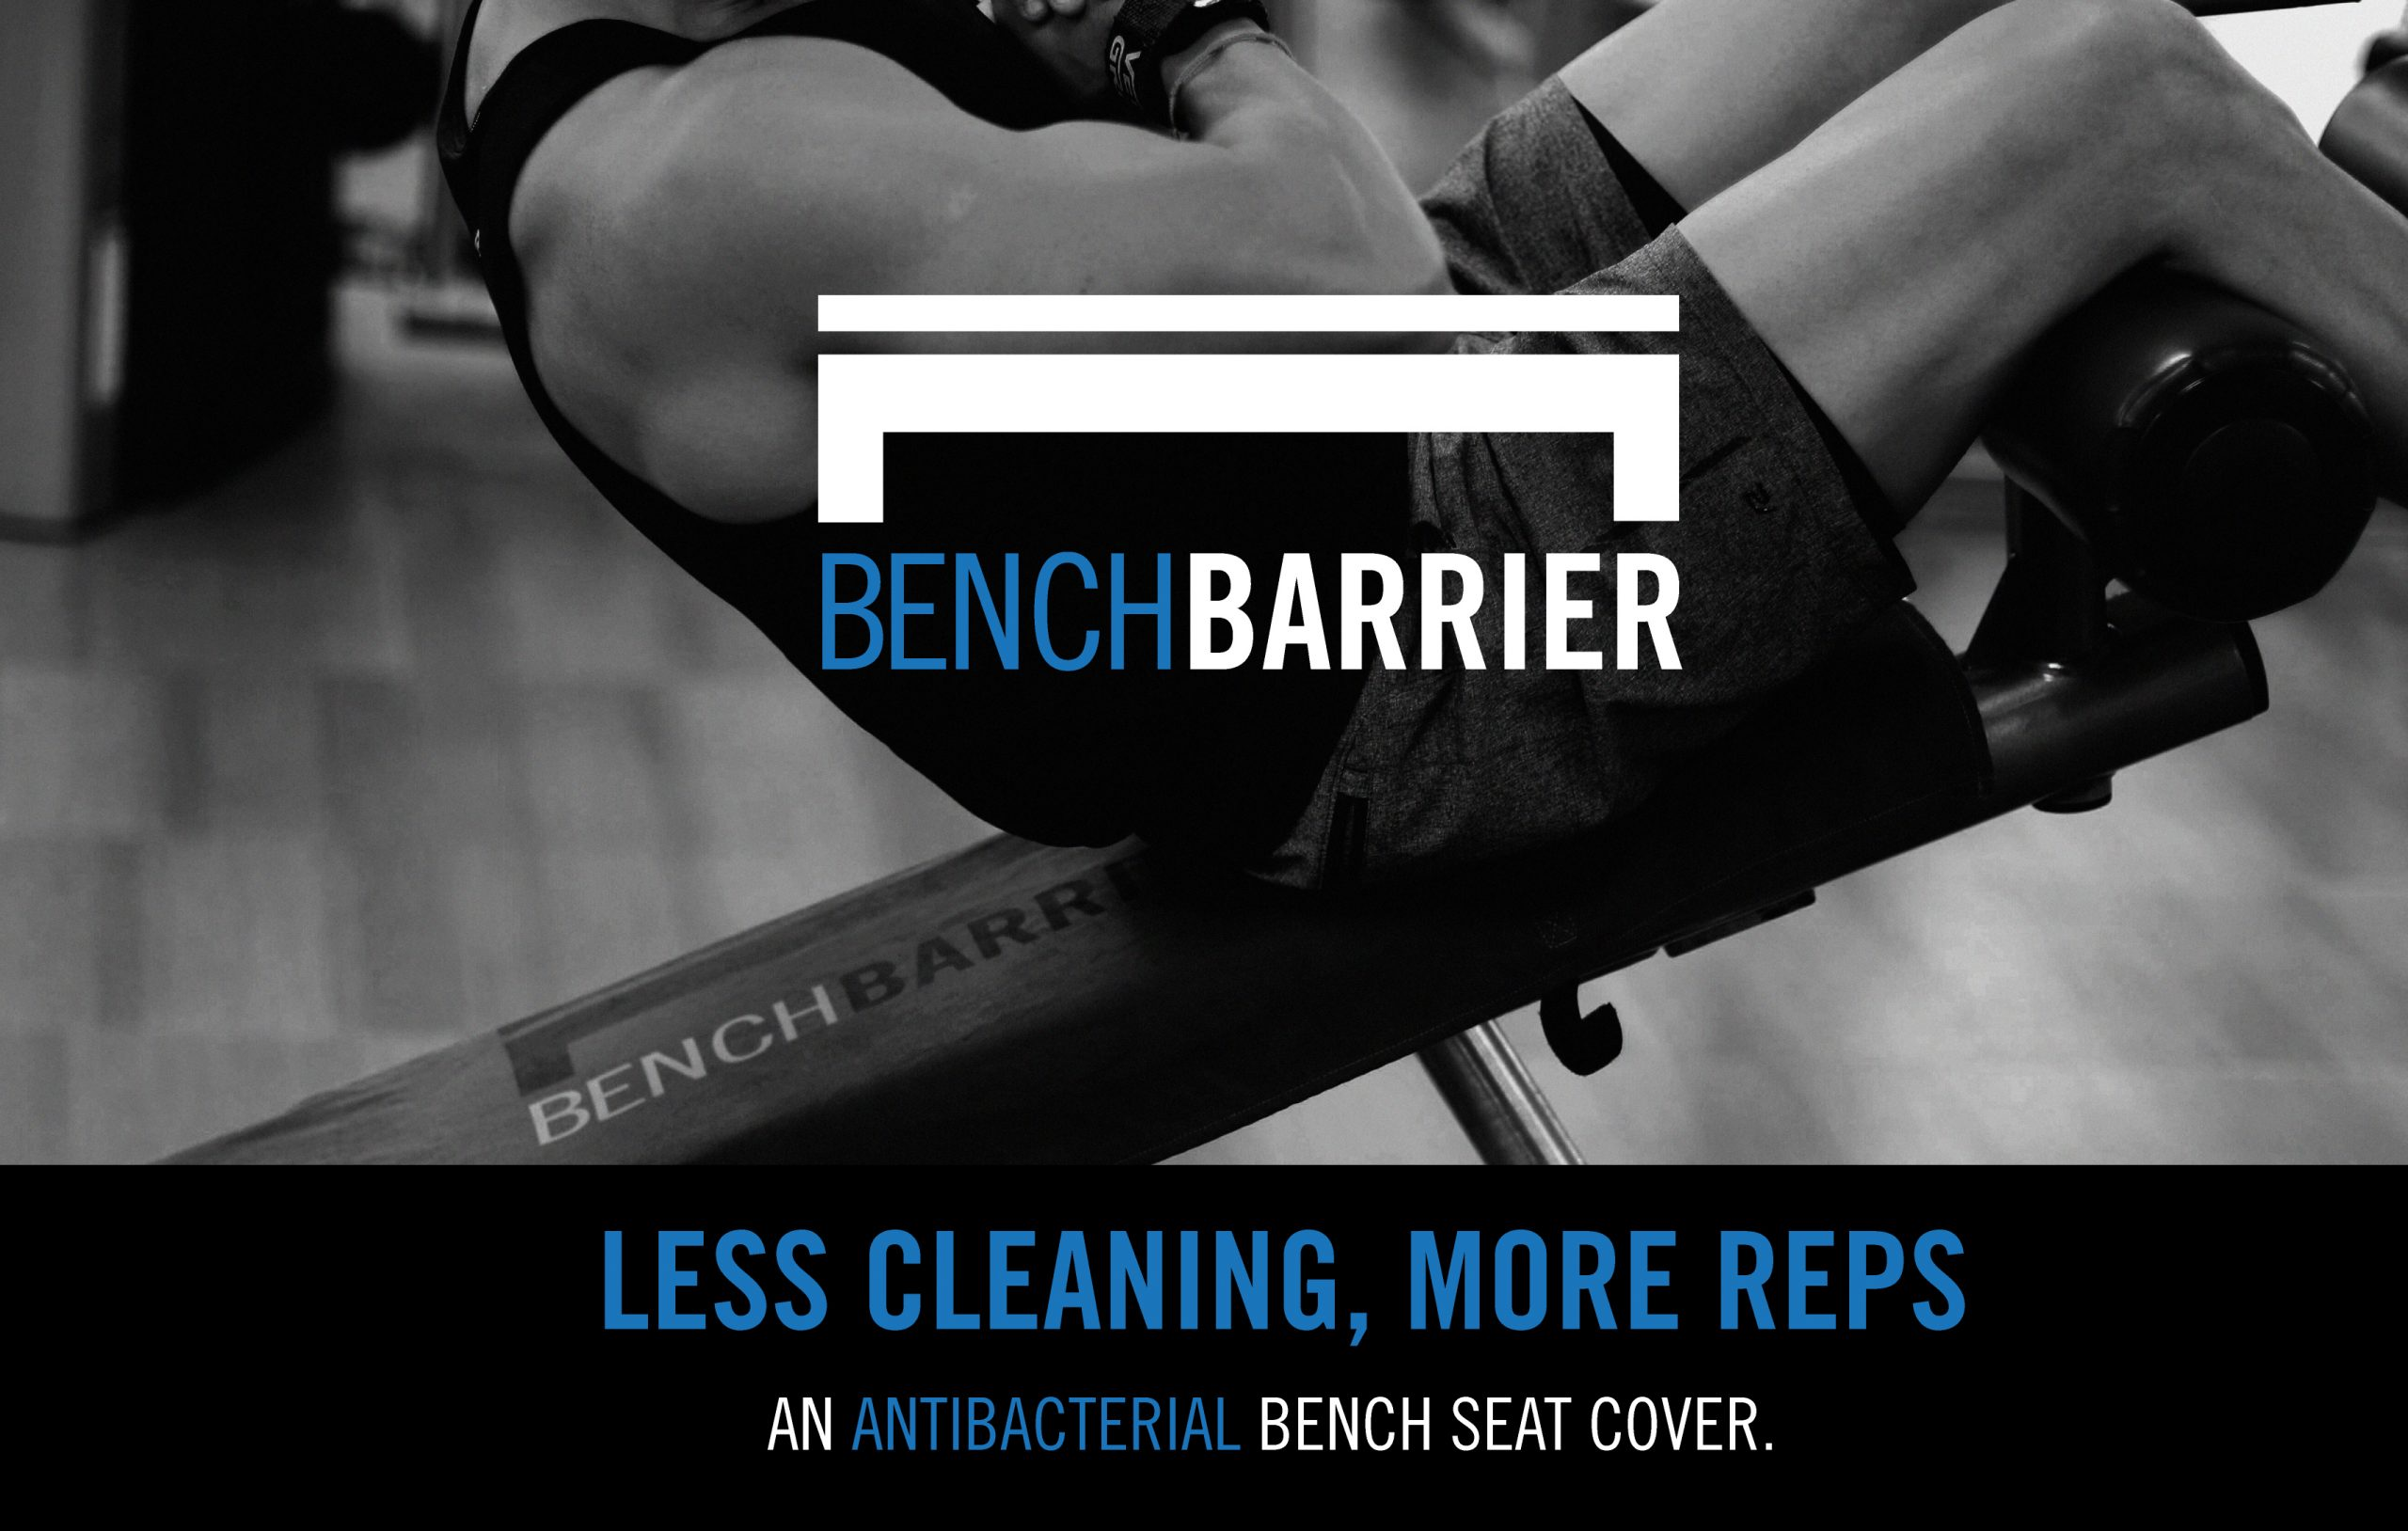 BENCHBARRIER™ is utilizing Mr. Checkout's Fast Track Program to reach Independent Nutrition Stores Nationwide. 1